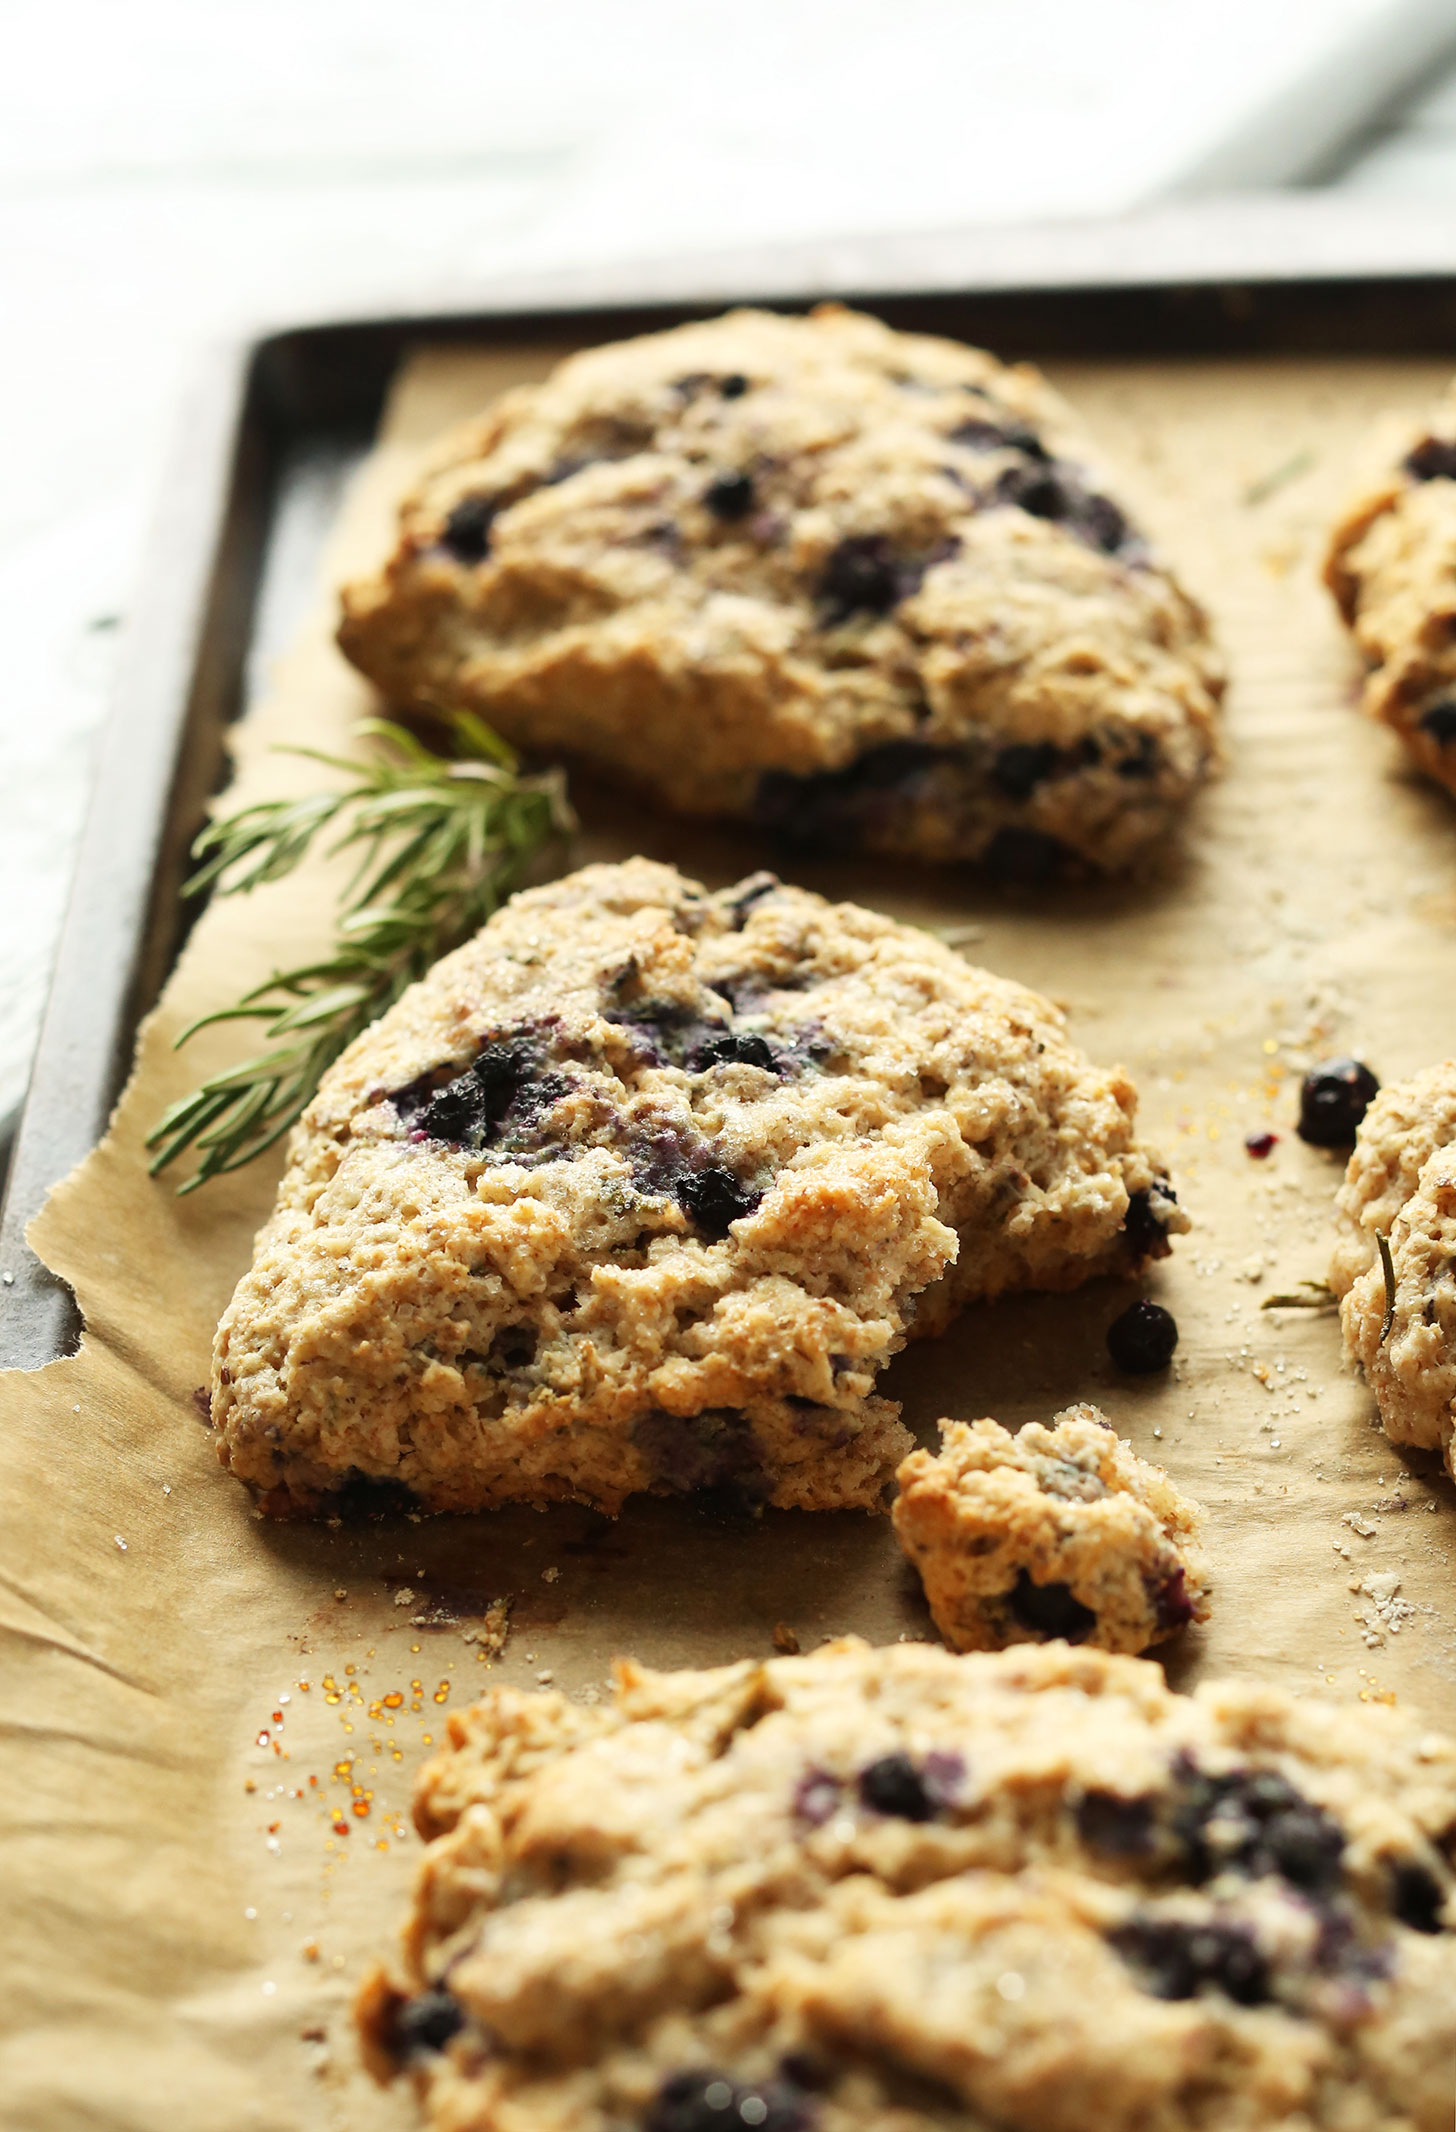 Delicious 30-Minute Rosemary Blueberry Scones made with spelt flour, coconut oil, and fresh rosemary